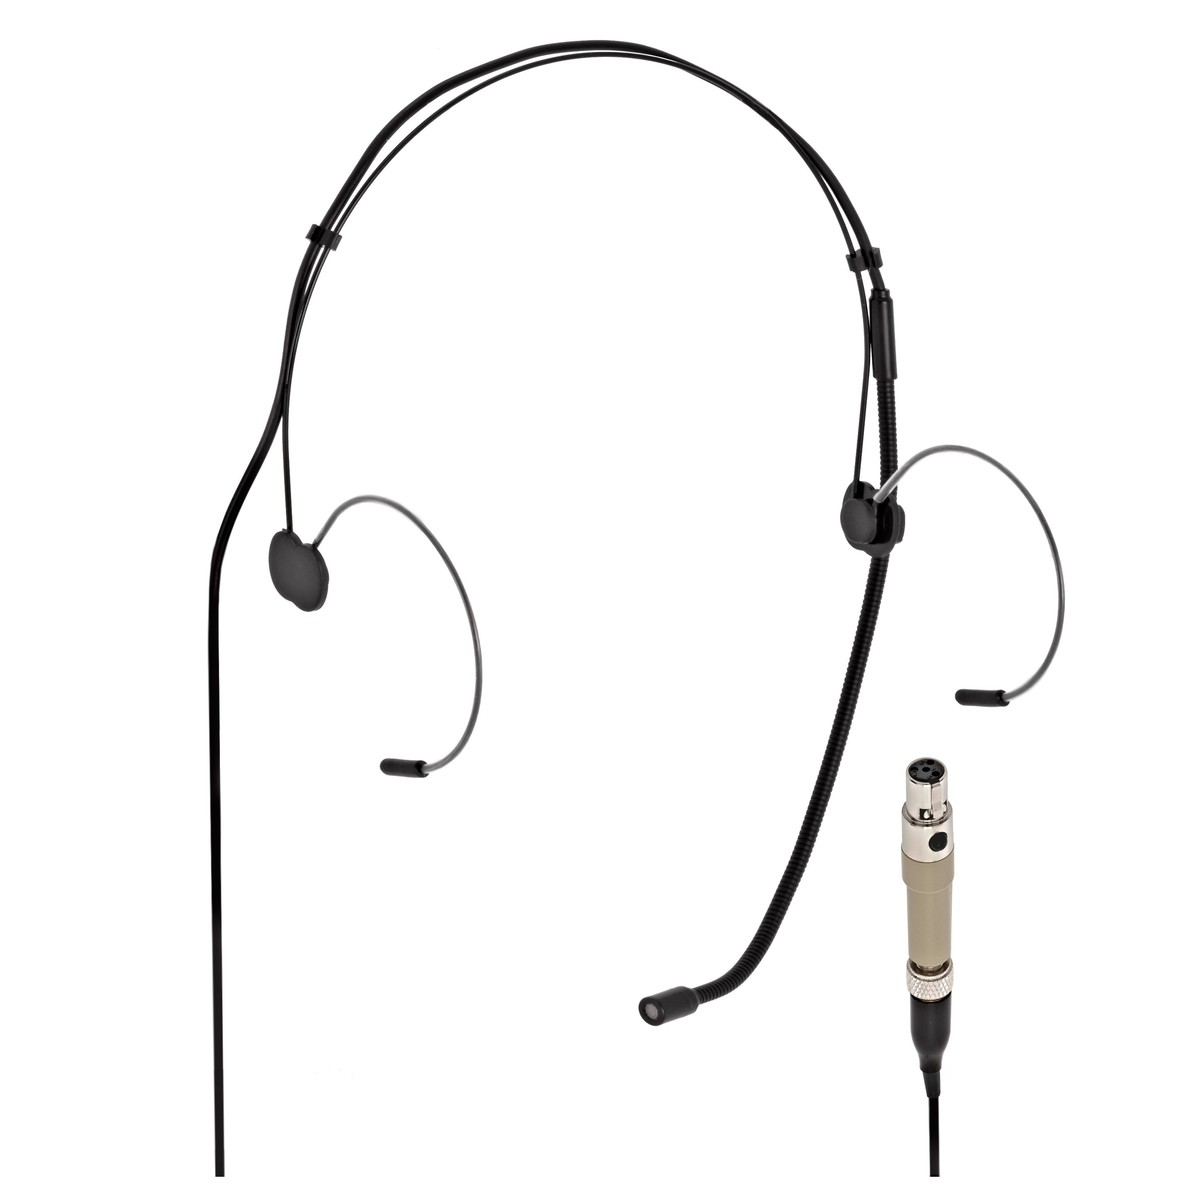 Subzero Headset Microphone With Shure Style Connector